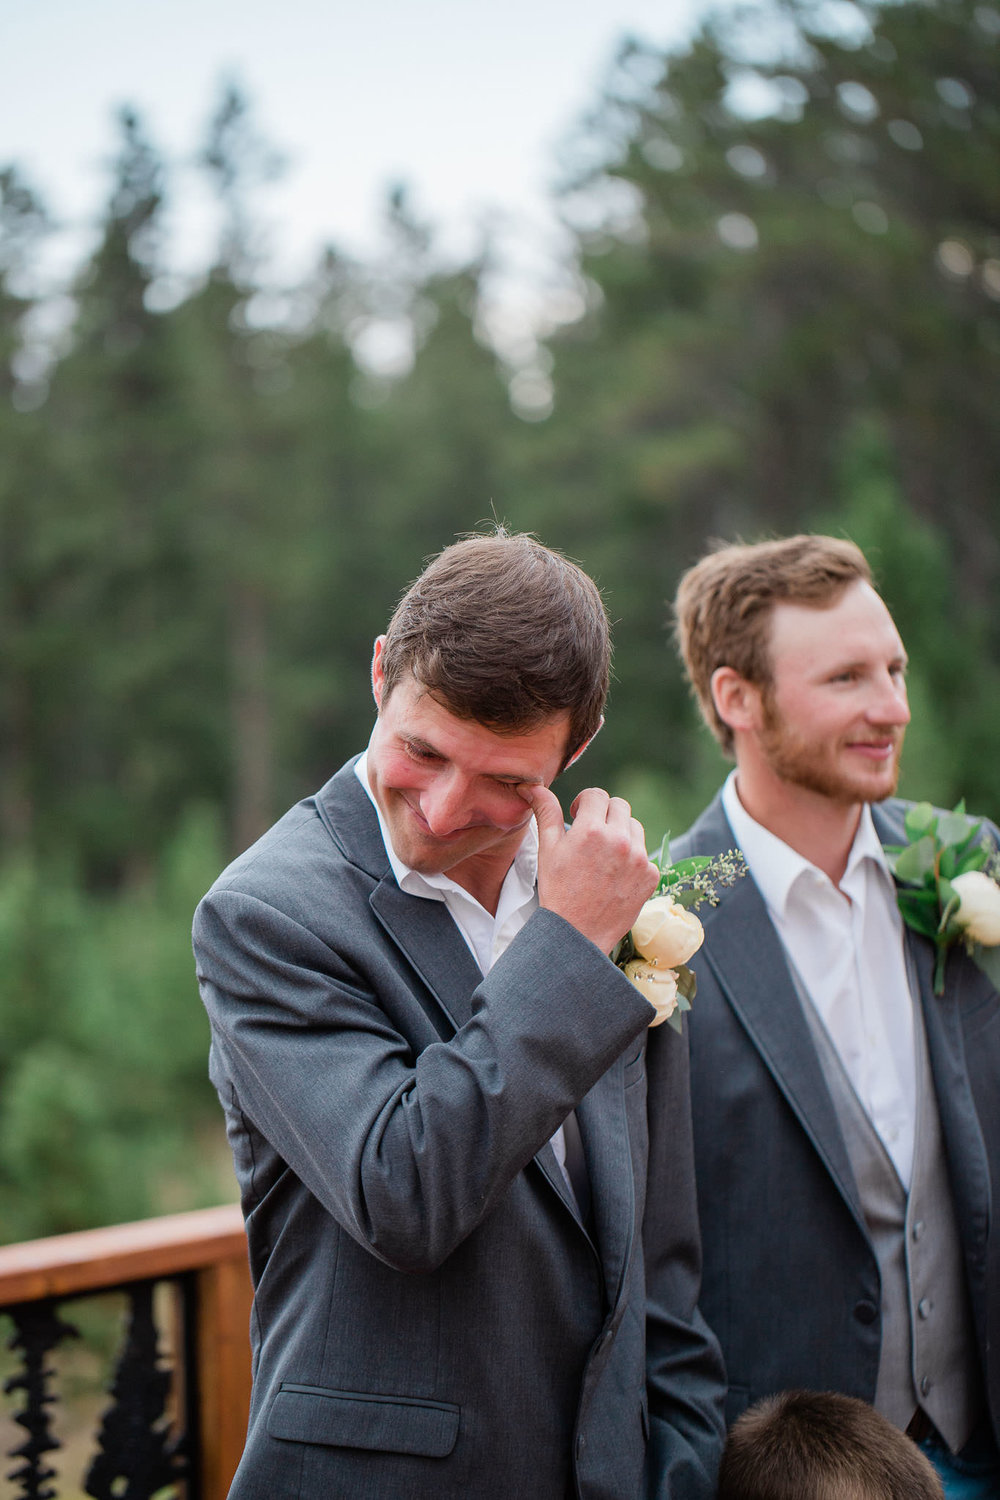 Emotional groom wipes tear first look reaction at wedding ceremony in Casper, Wyoming